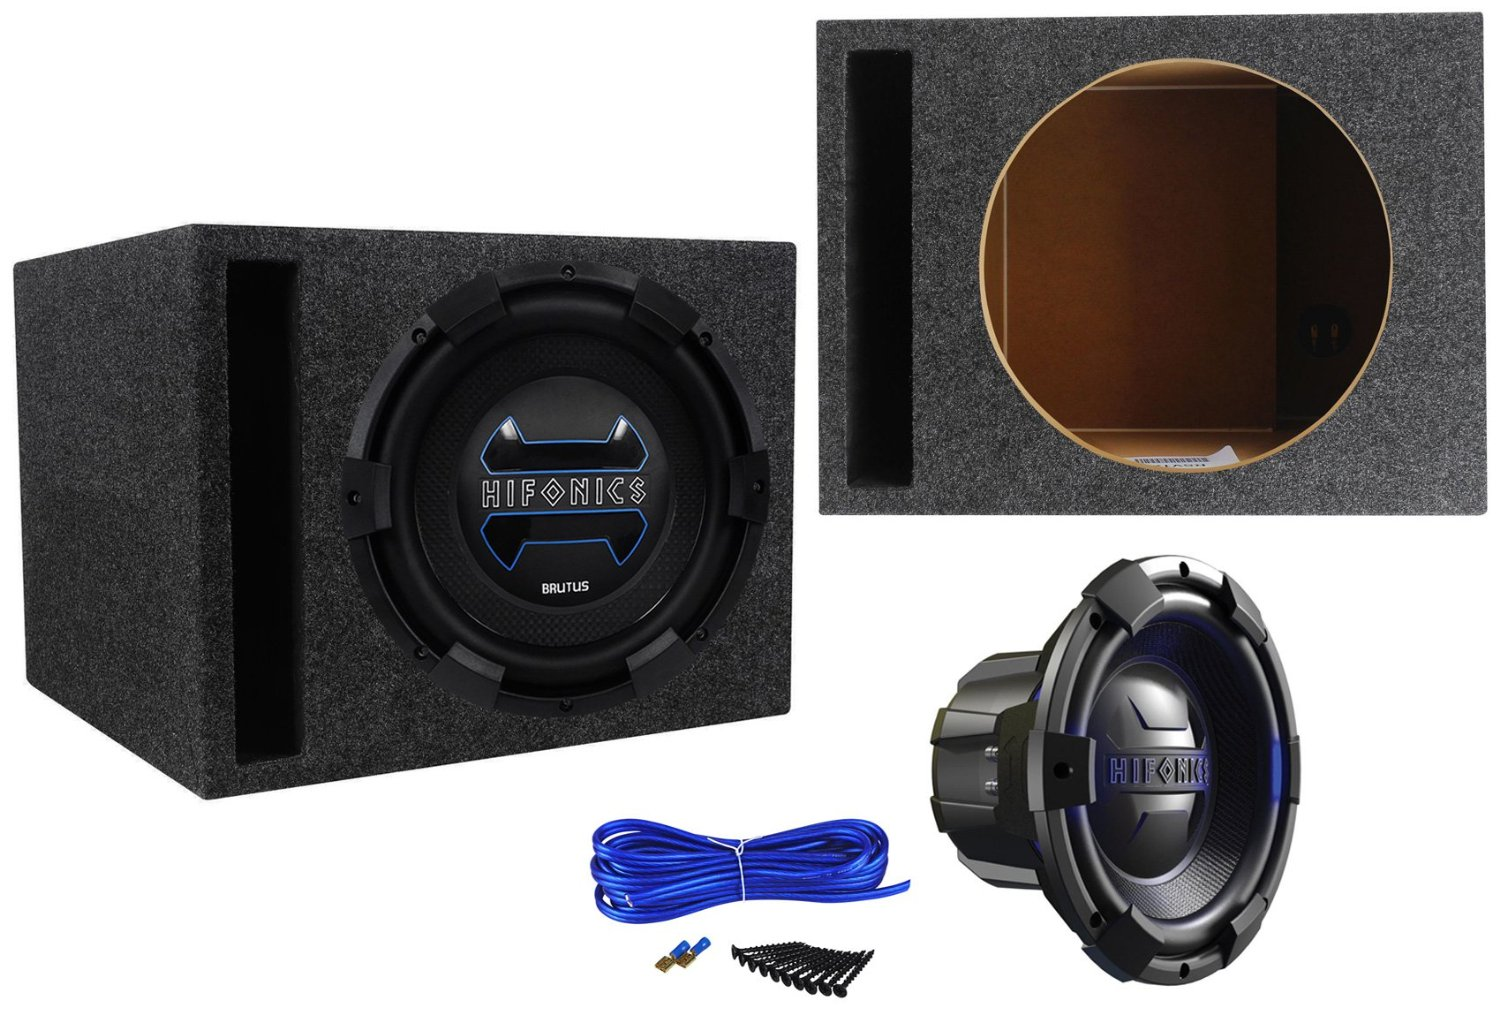 Buy Hifonics Mxz 12 D2 Subwoofer in Cheap Price on Alibaba com